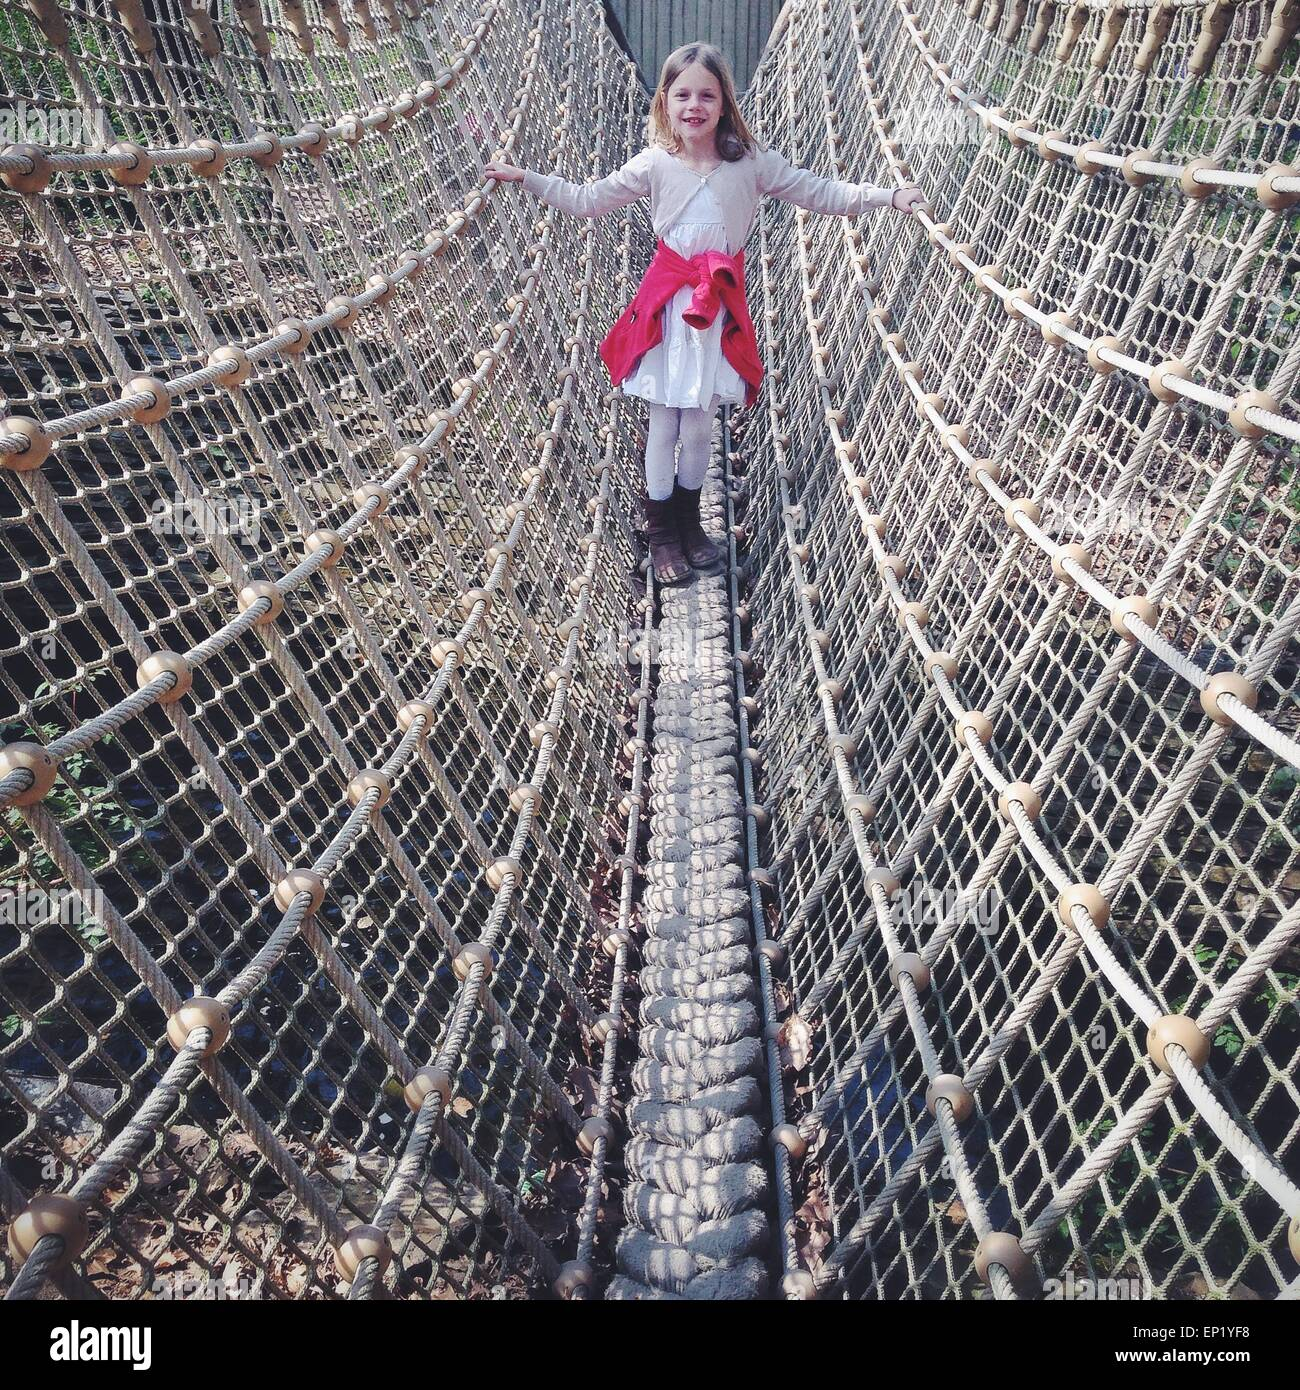 Girl standing on a rope bridge - Stock Image